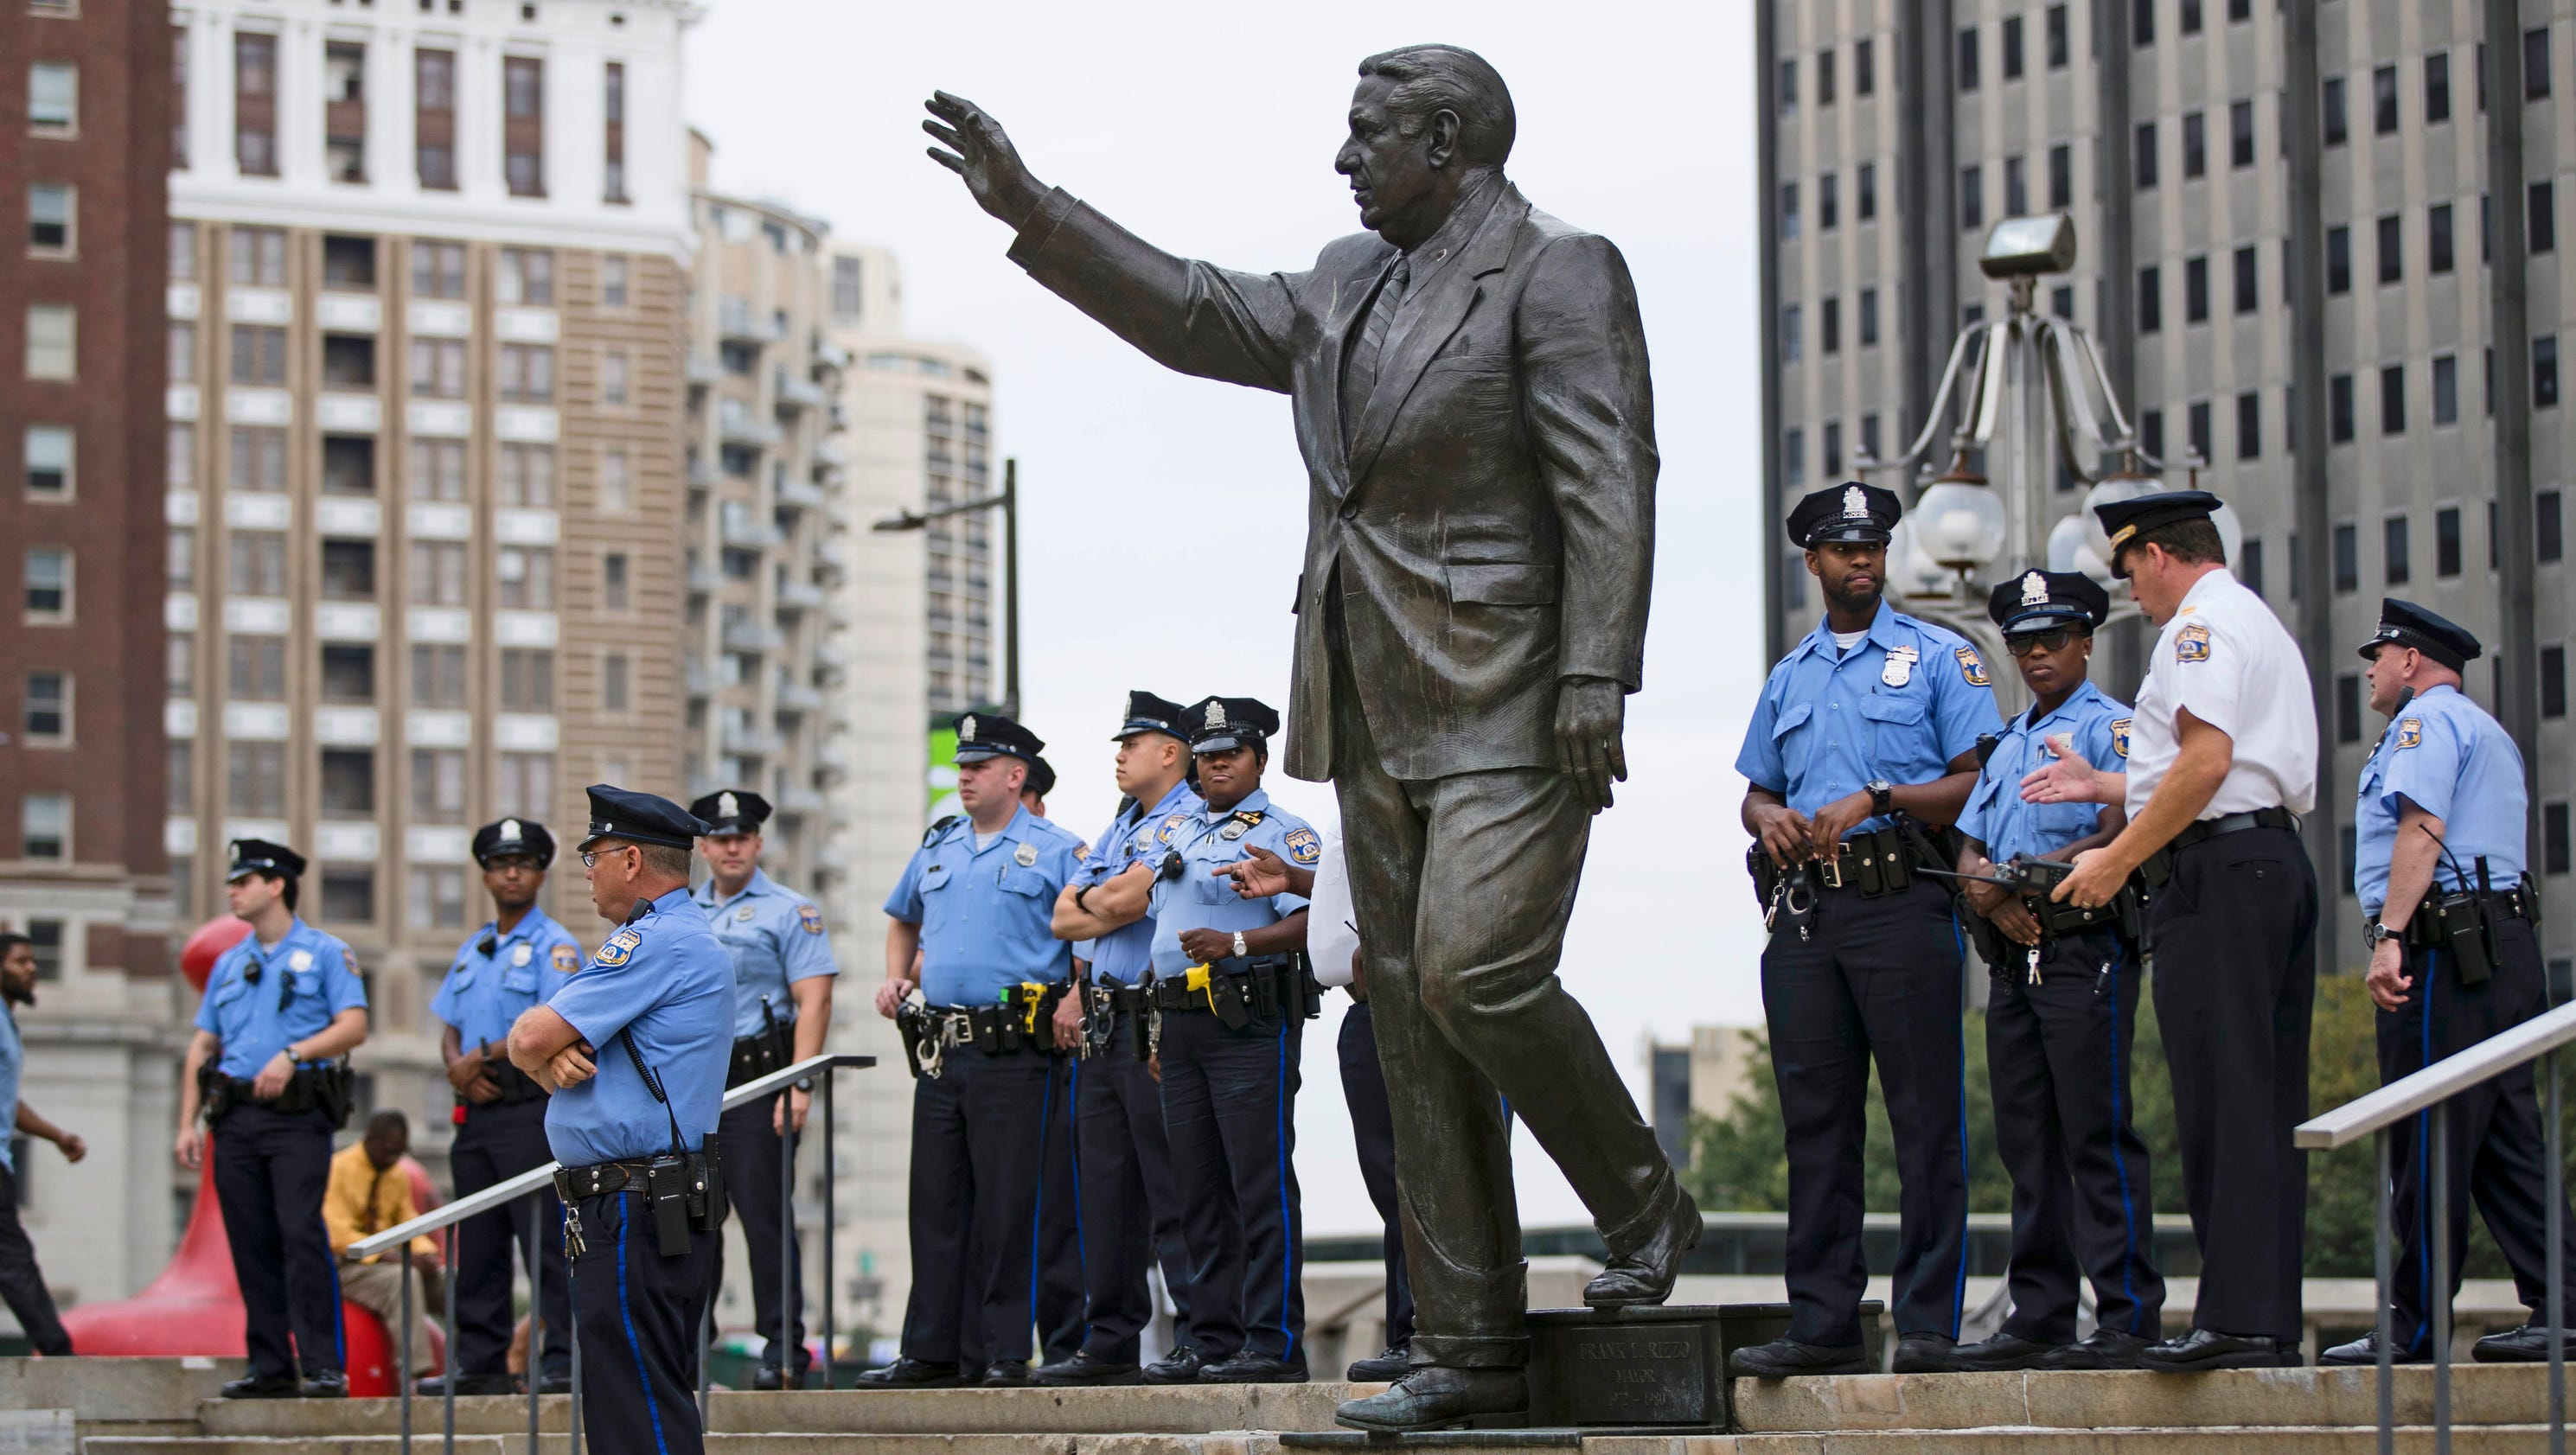 Philadelphia moving statue of controversial ex-mayor Frank Rizzo